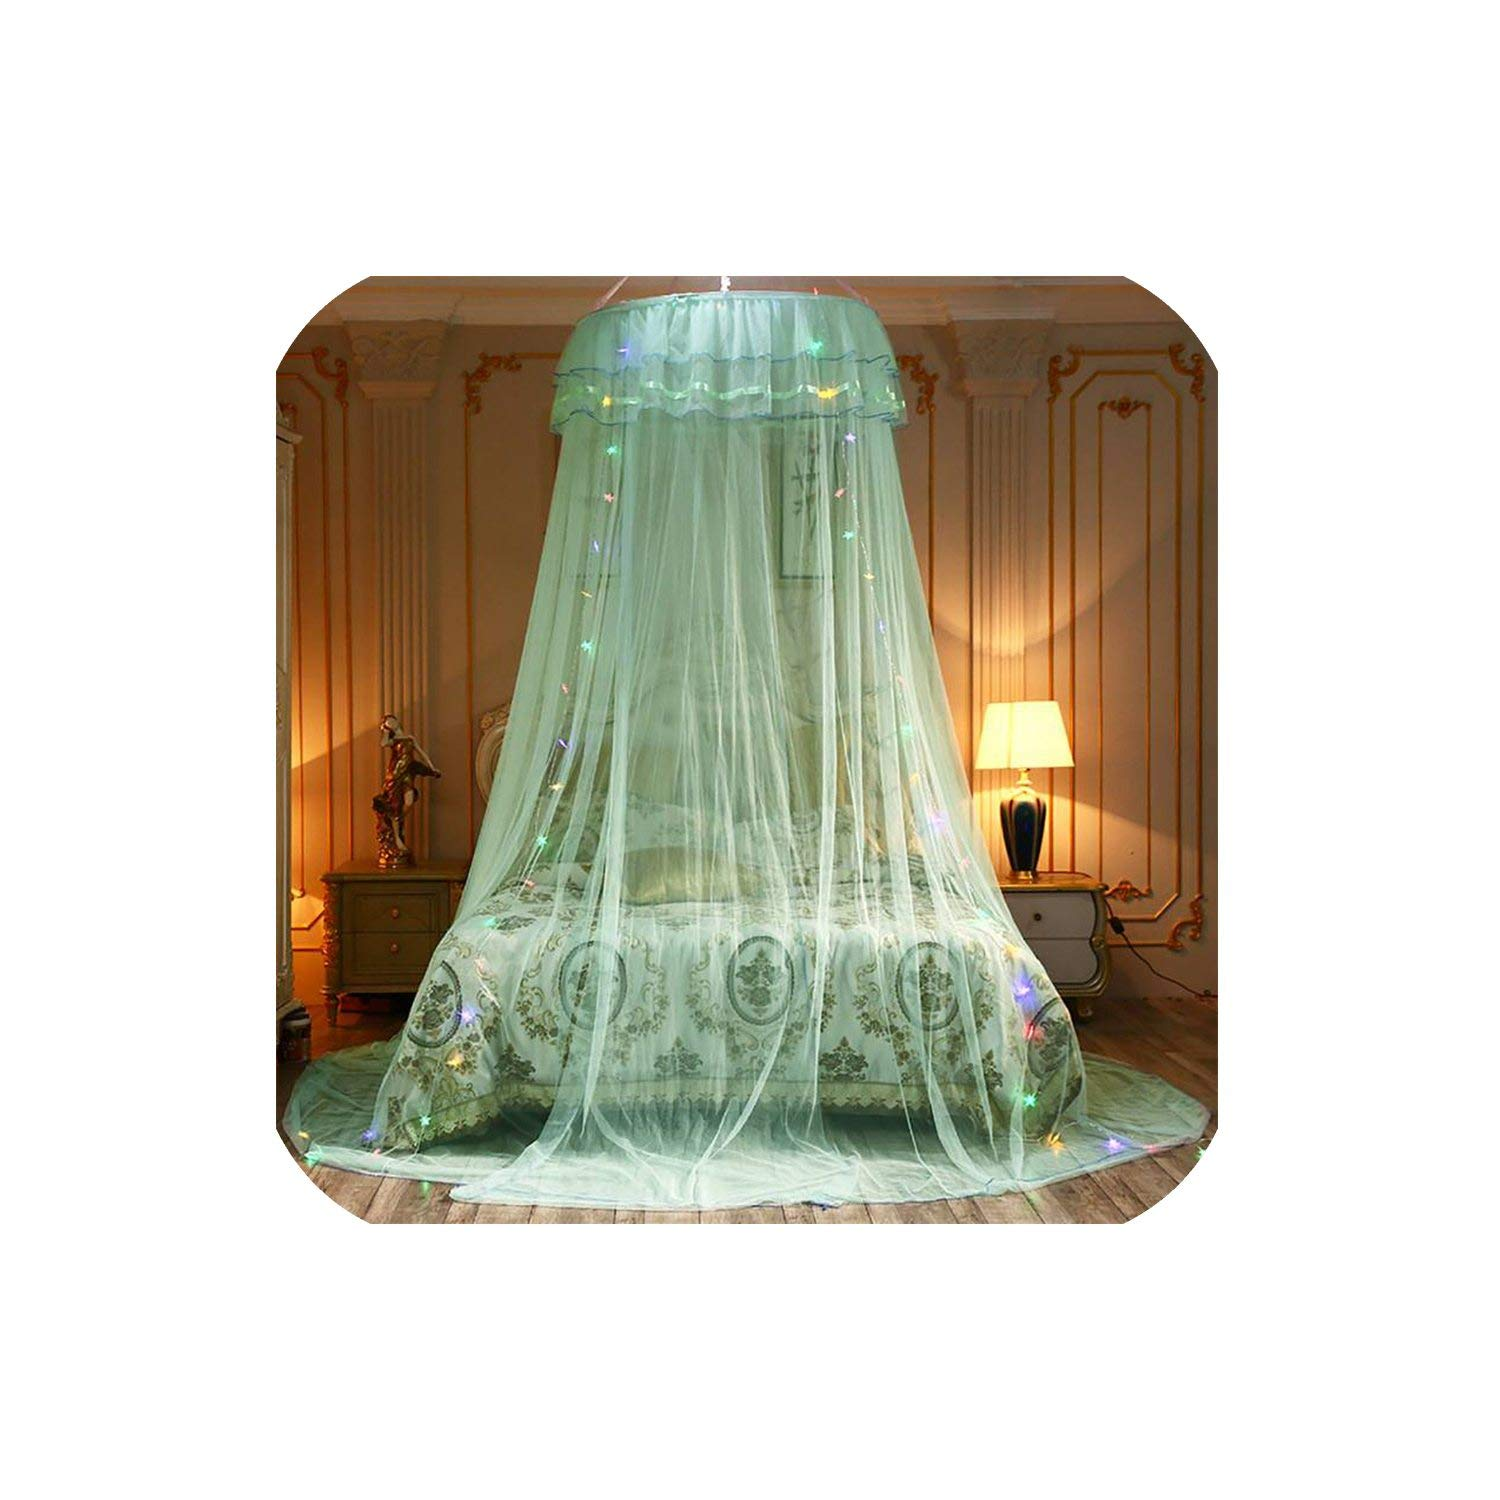 Elegant Canopy Mosquito Net for Double Bed Mosquito Repellent Tent Insect Reject Canopy Bed Curtain Bed Tent,3